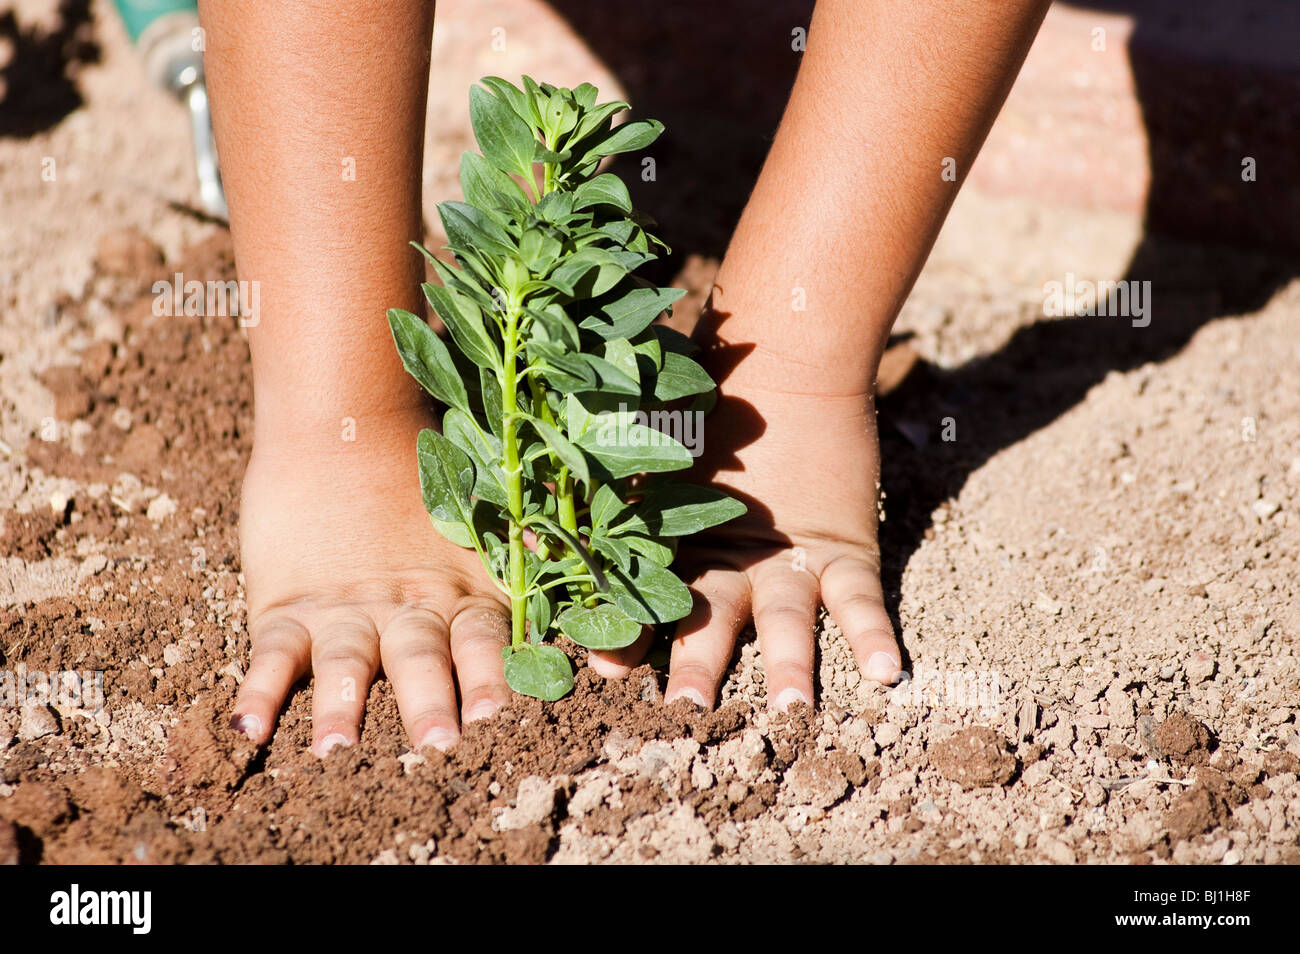 a child plants a flower garden as a community activity. - Stock Image